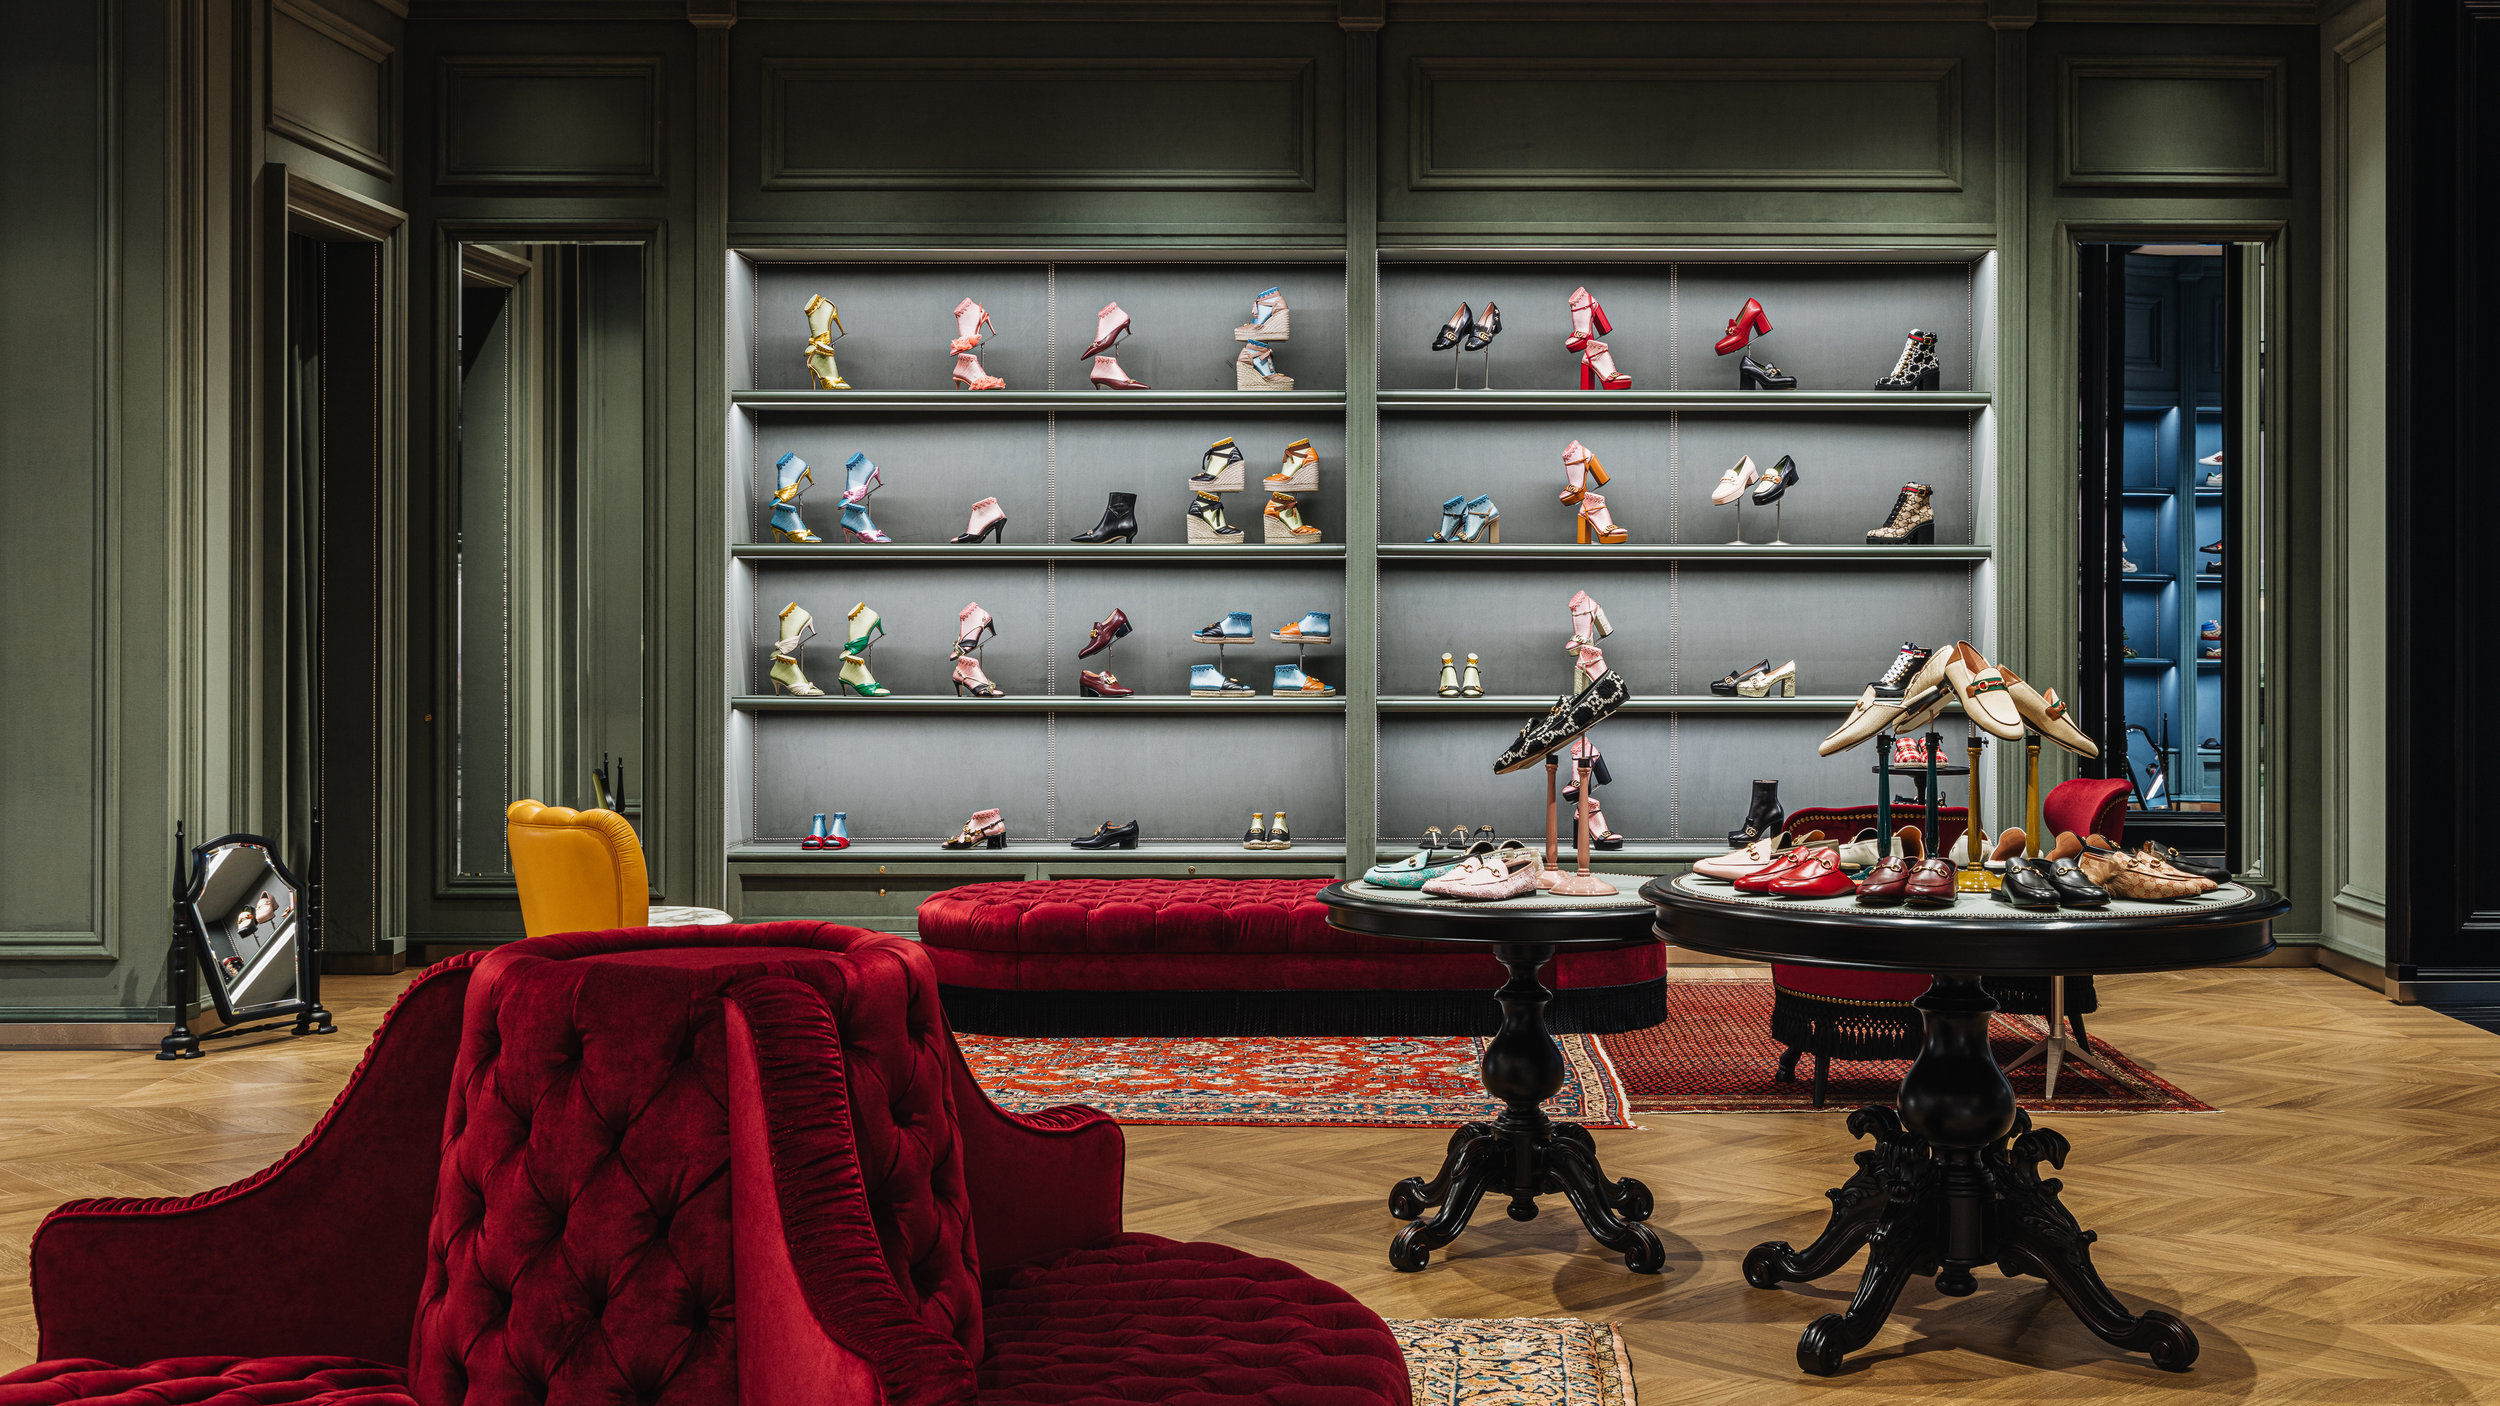 Women's footwear wall at Gucci Yorkdale. Photo: Gucci